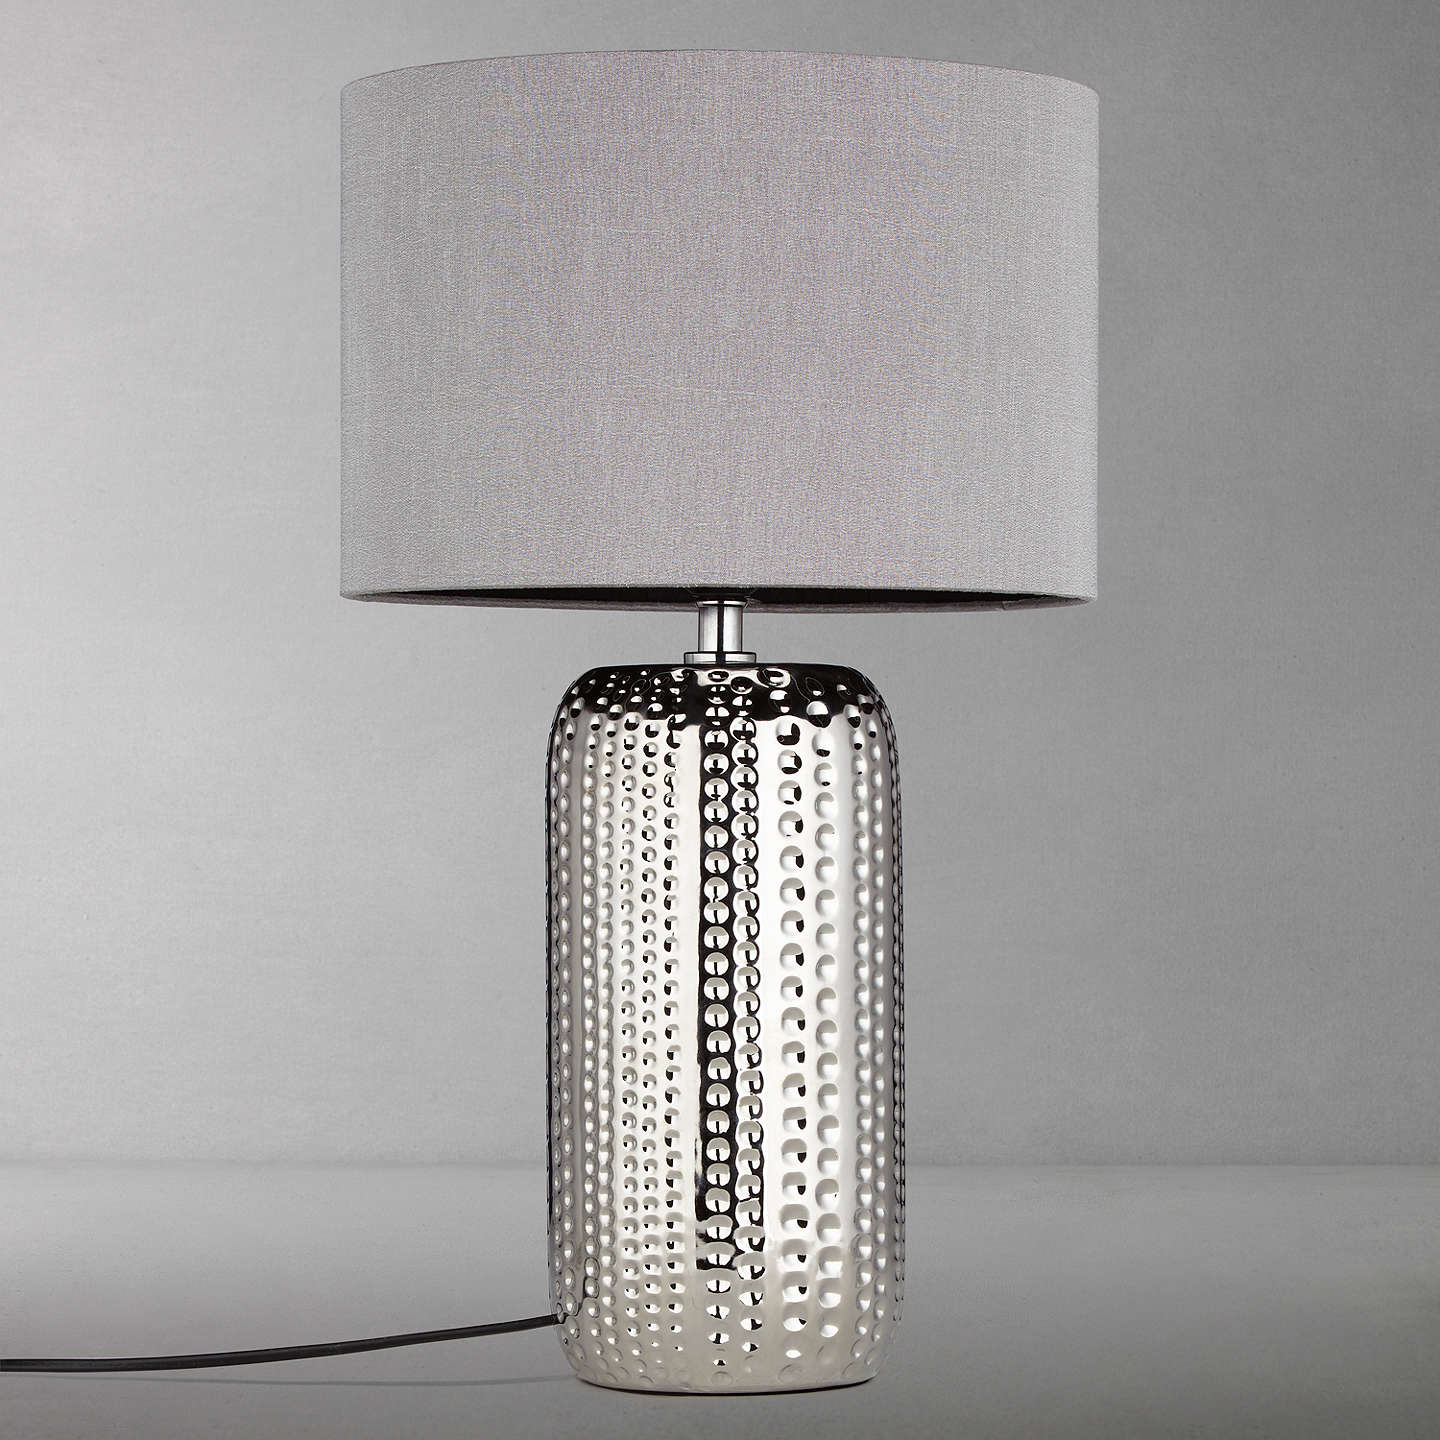 BuyJohn Lewis Sabrina Dimple Ceramic Table Lamp, Chrome Online at johnlewis.com